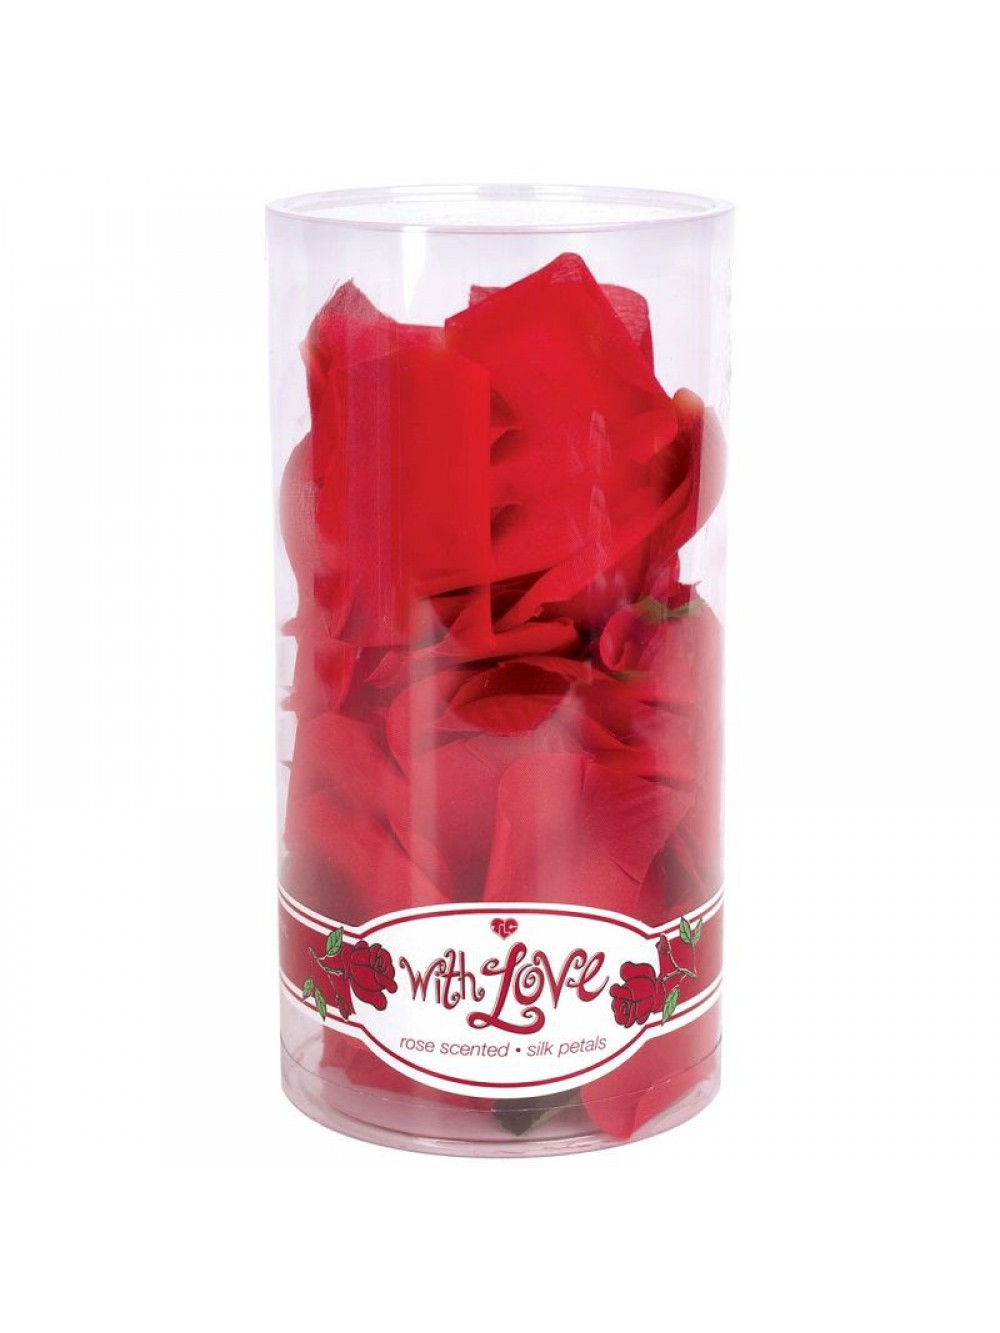 WITH LOVE, ROSE SCENTED SILK PETALS 051021146840